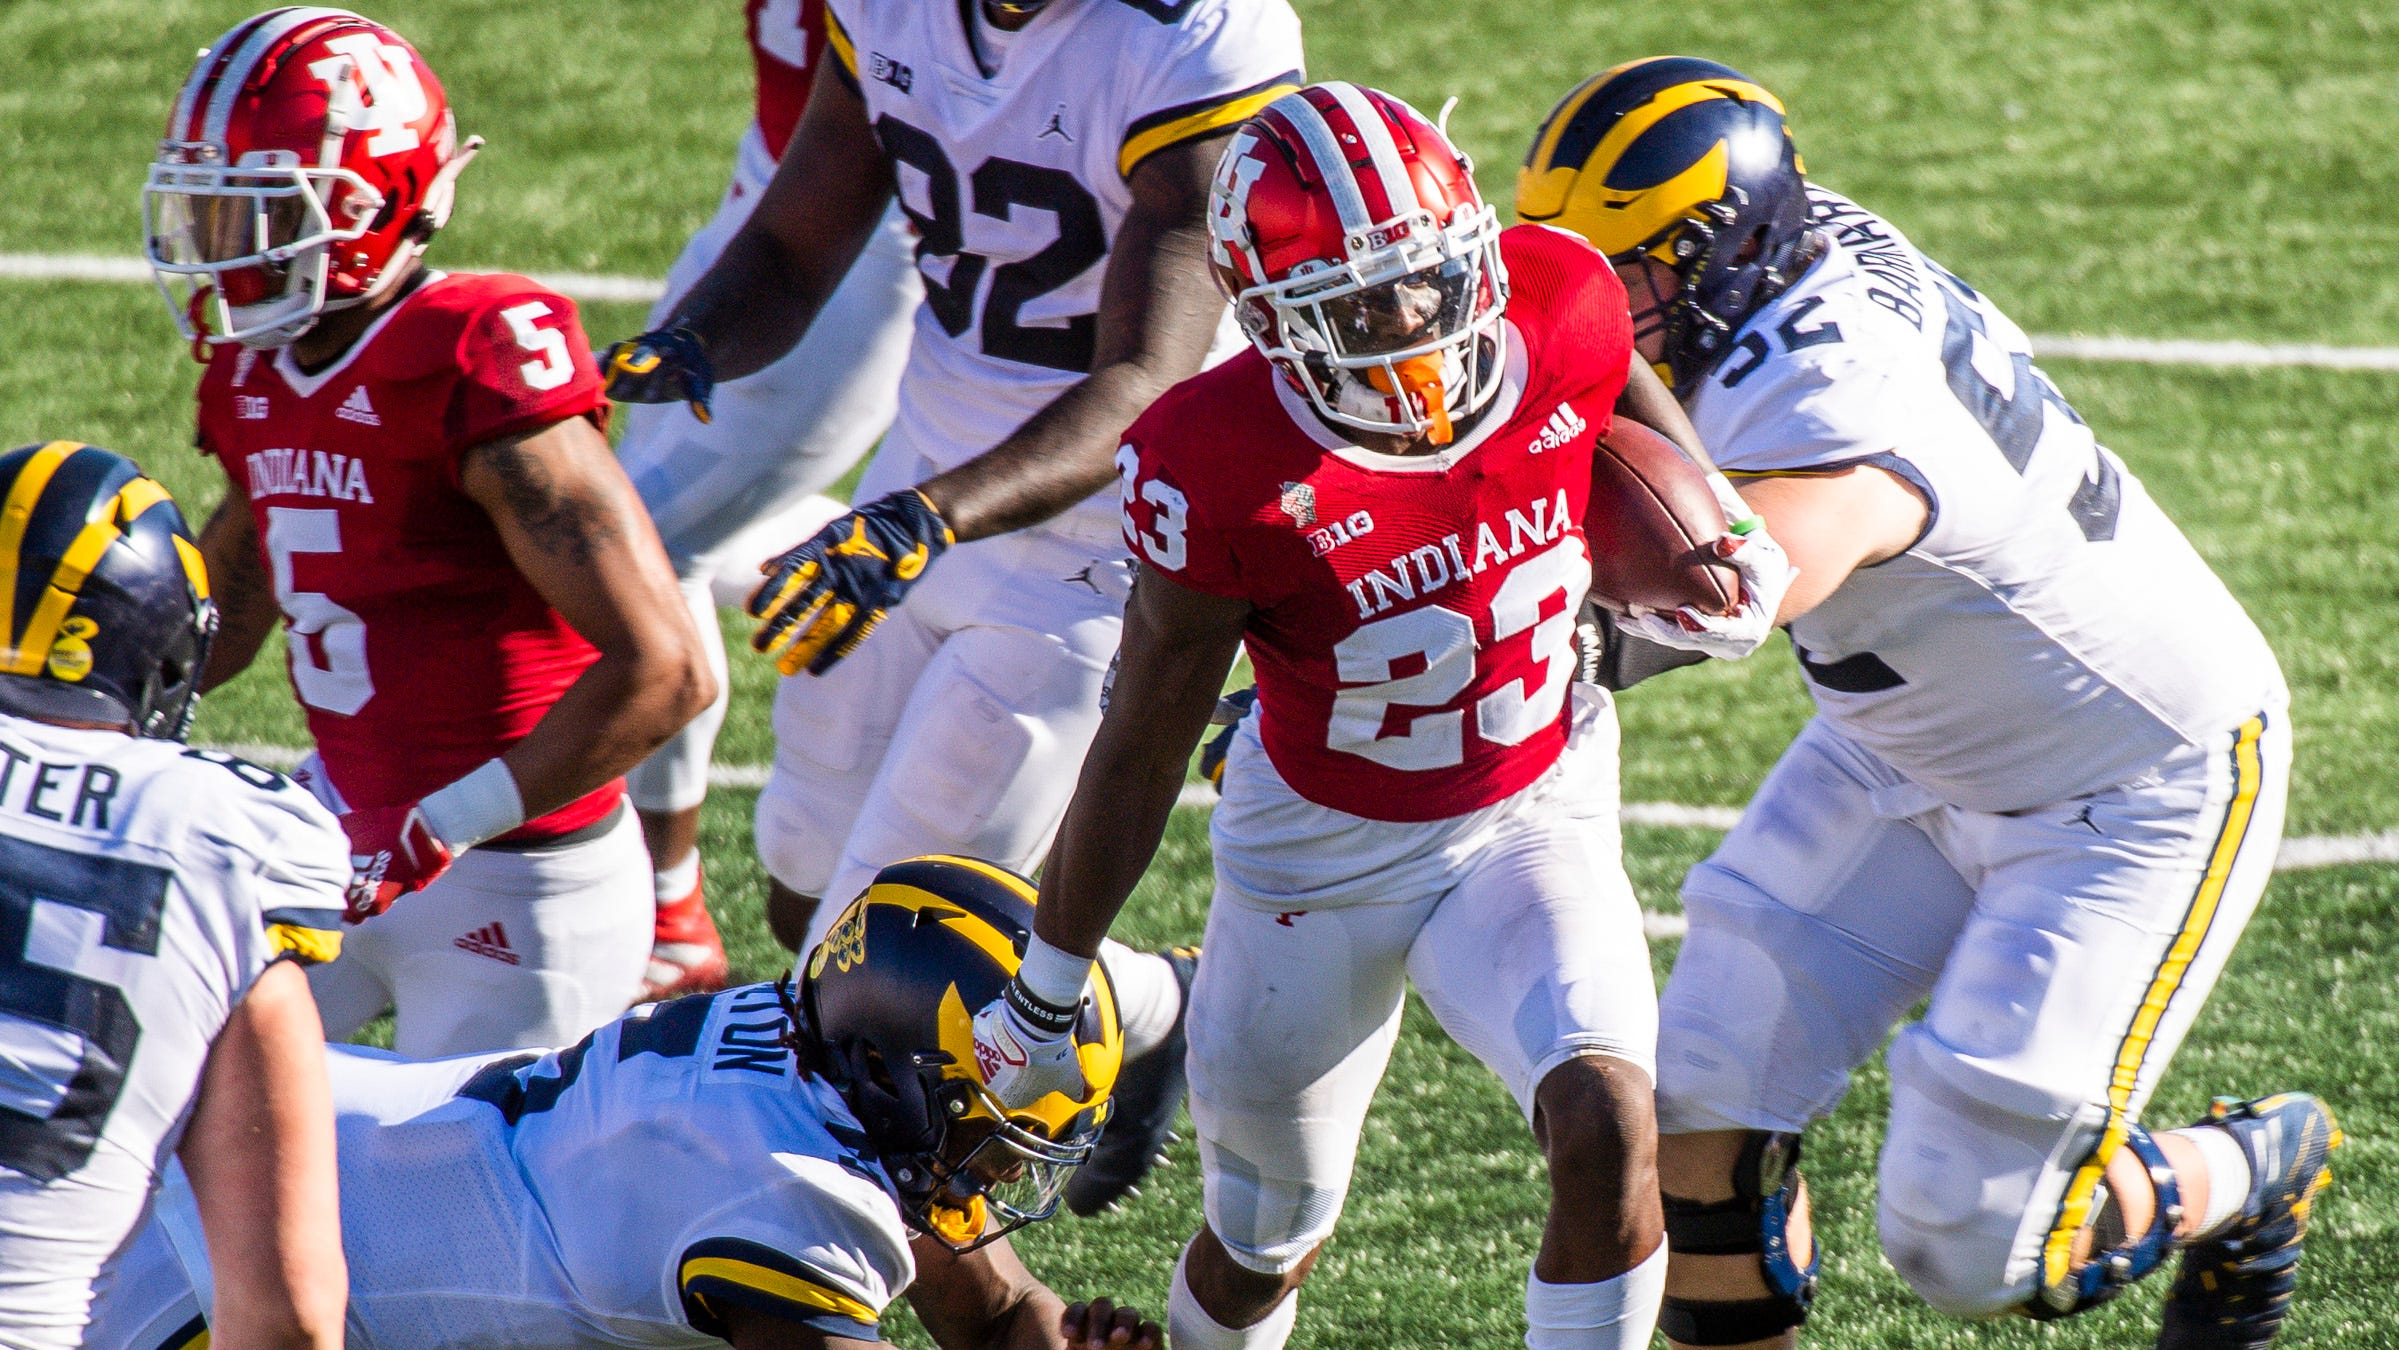 Indiana Football Jaylin Williams Went From Under The Radar Recruit To All Big Ten Cb Running fred is a game that was made by dedalord things about it is that you have to run away from a ghost. indiana football jaylin williams went